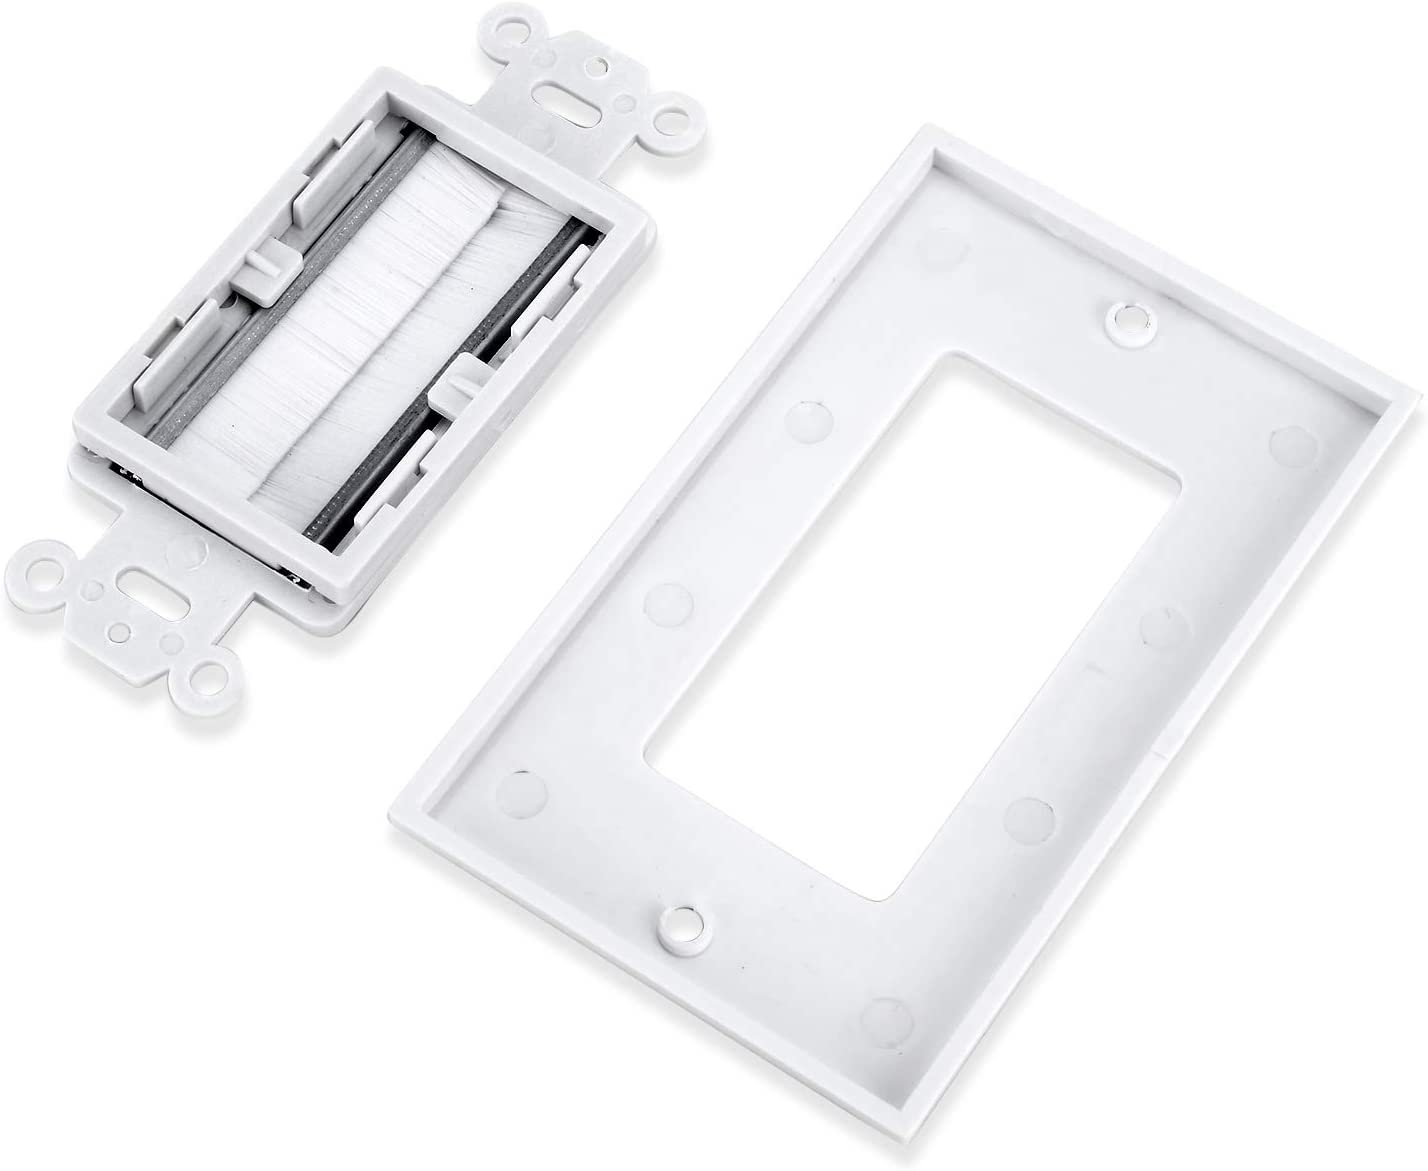 Gang Bracket Wall Cables with Single Gang Low Voltage Mounting Bracket Device UL Listed White Kit Smilelove Brush Wall Plate 5, White Kit